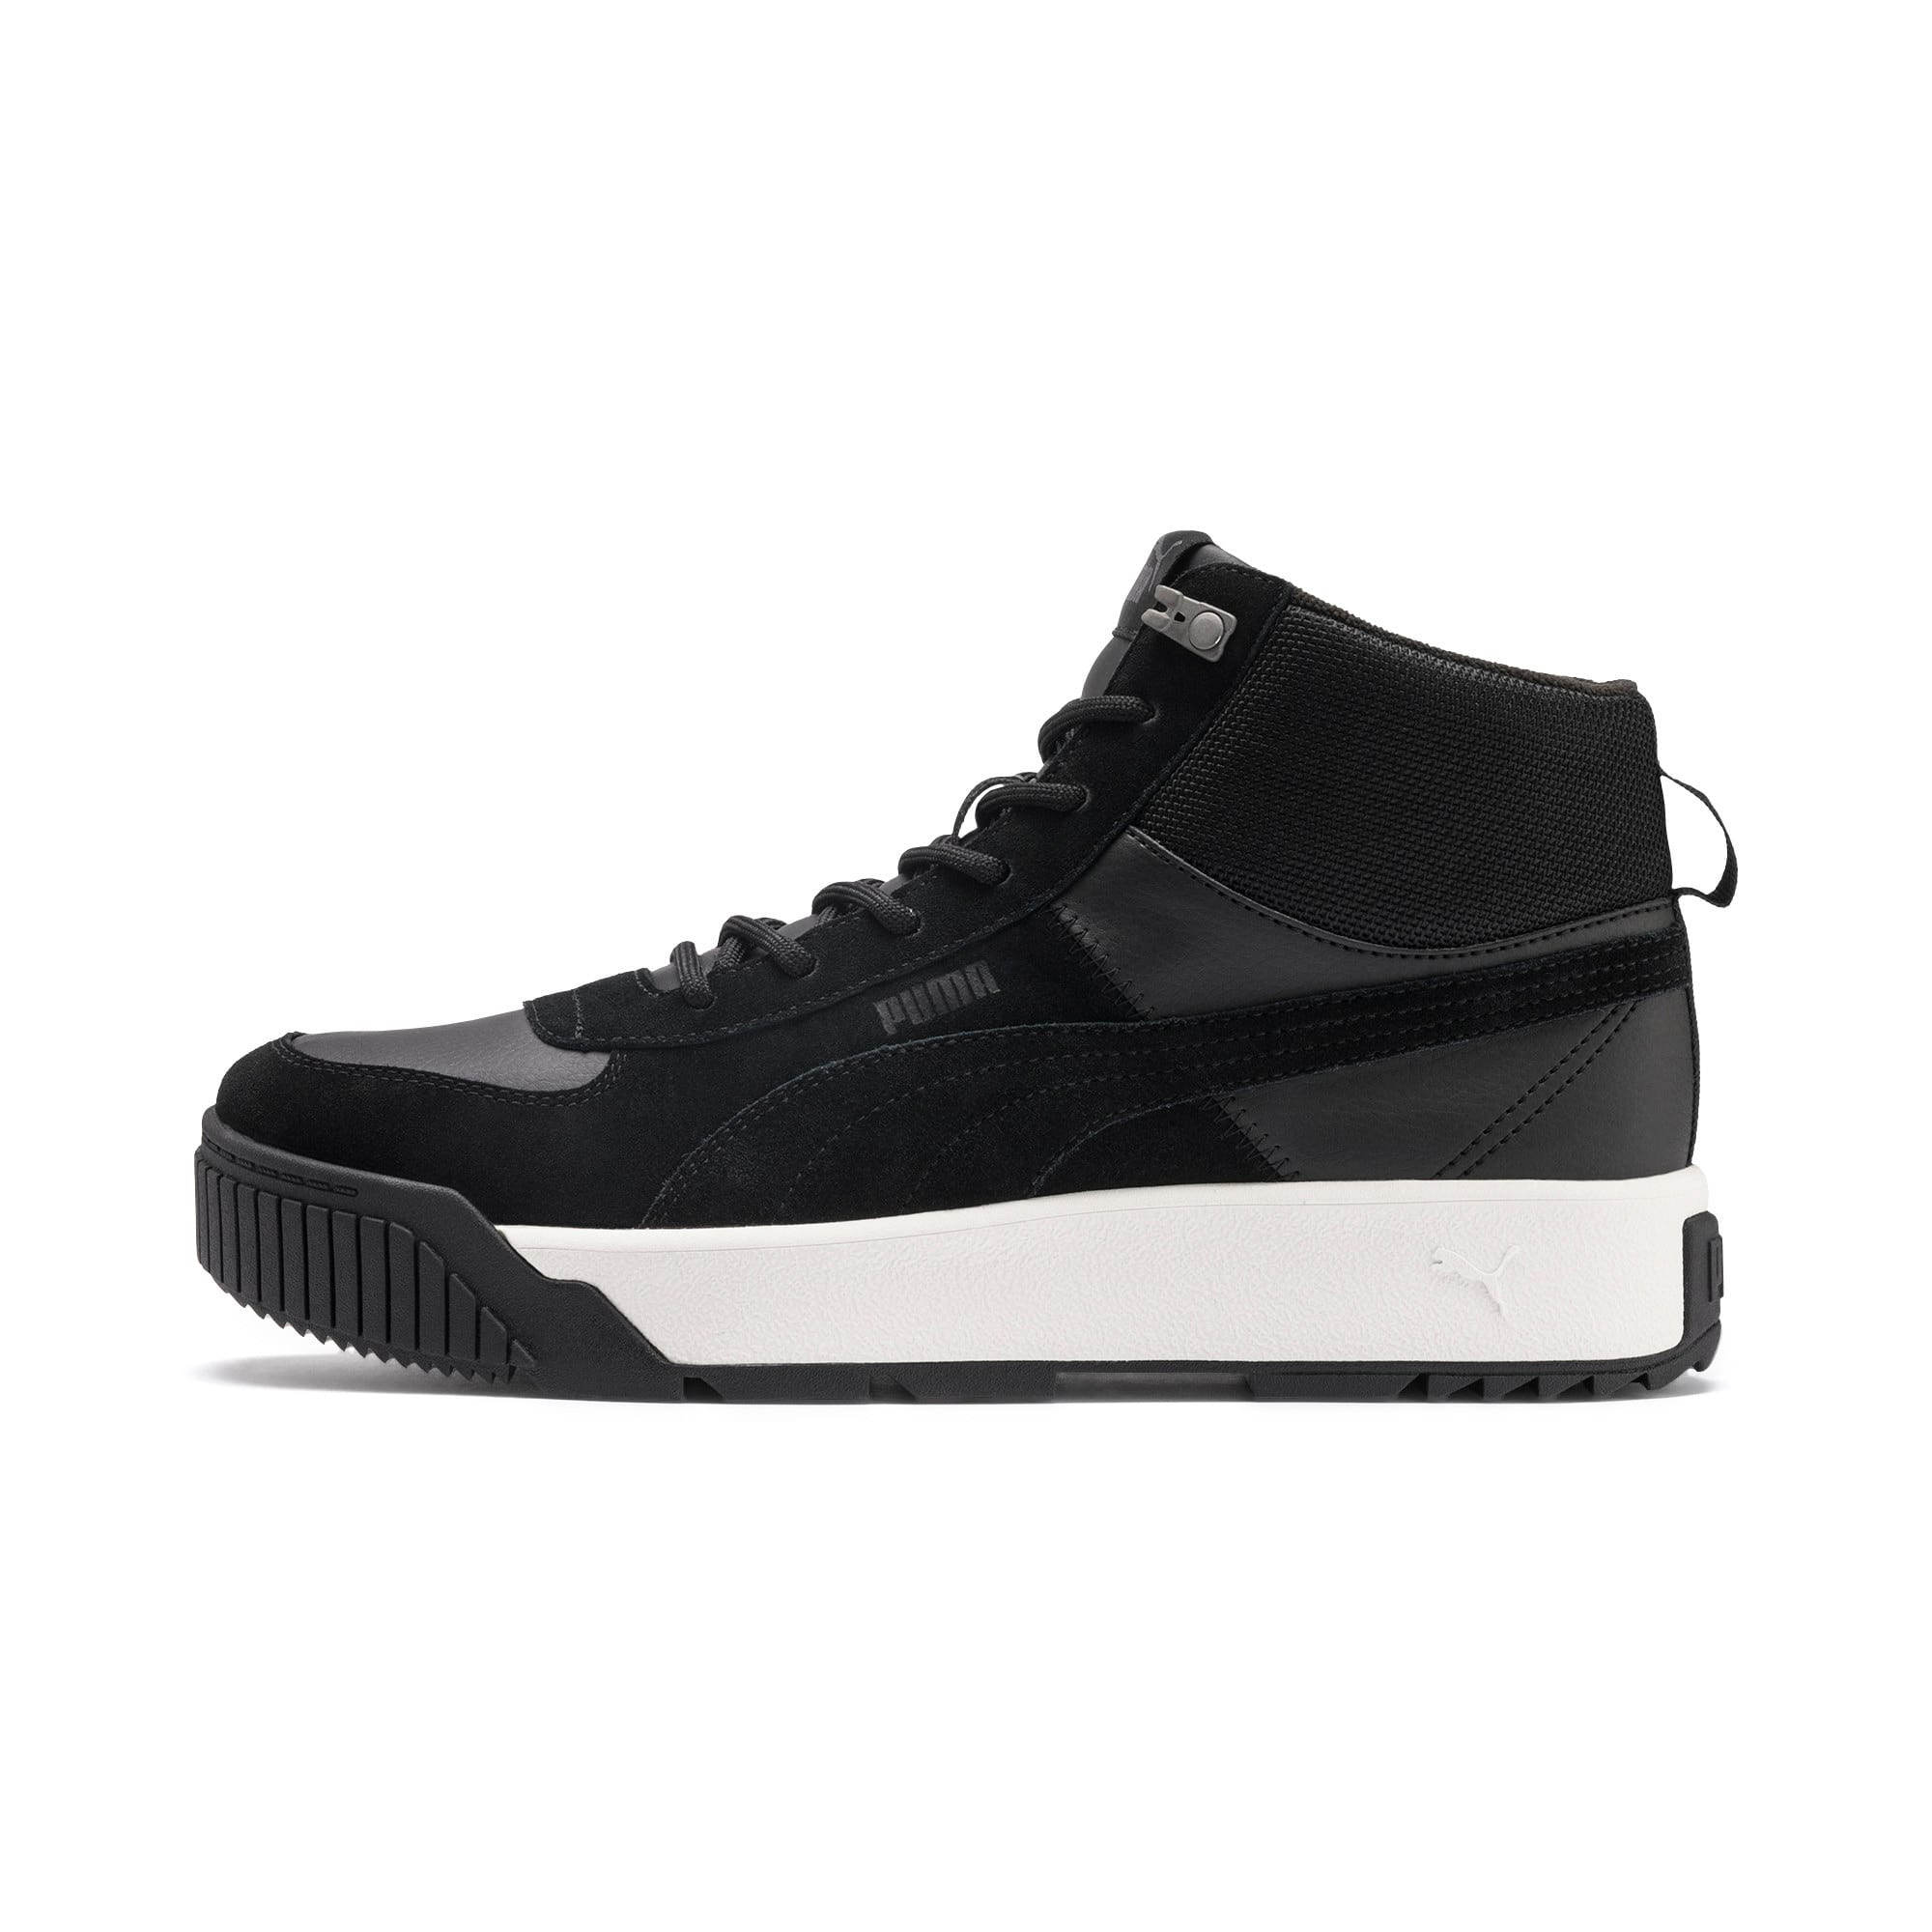 Thumbnail 1 of Basket bottine Tarrenz, Puma Black-Whisper White, medium